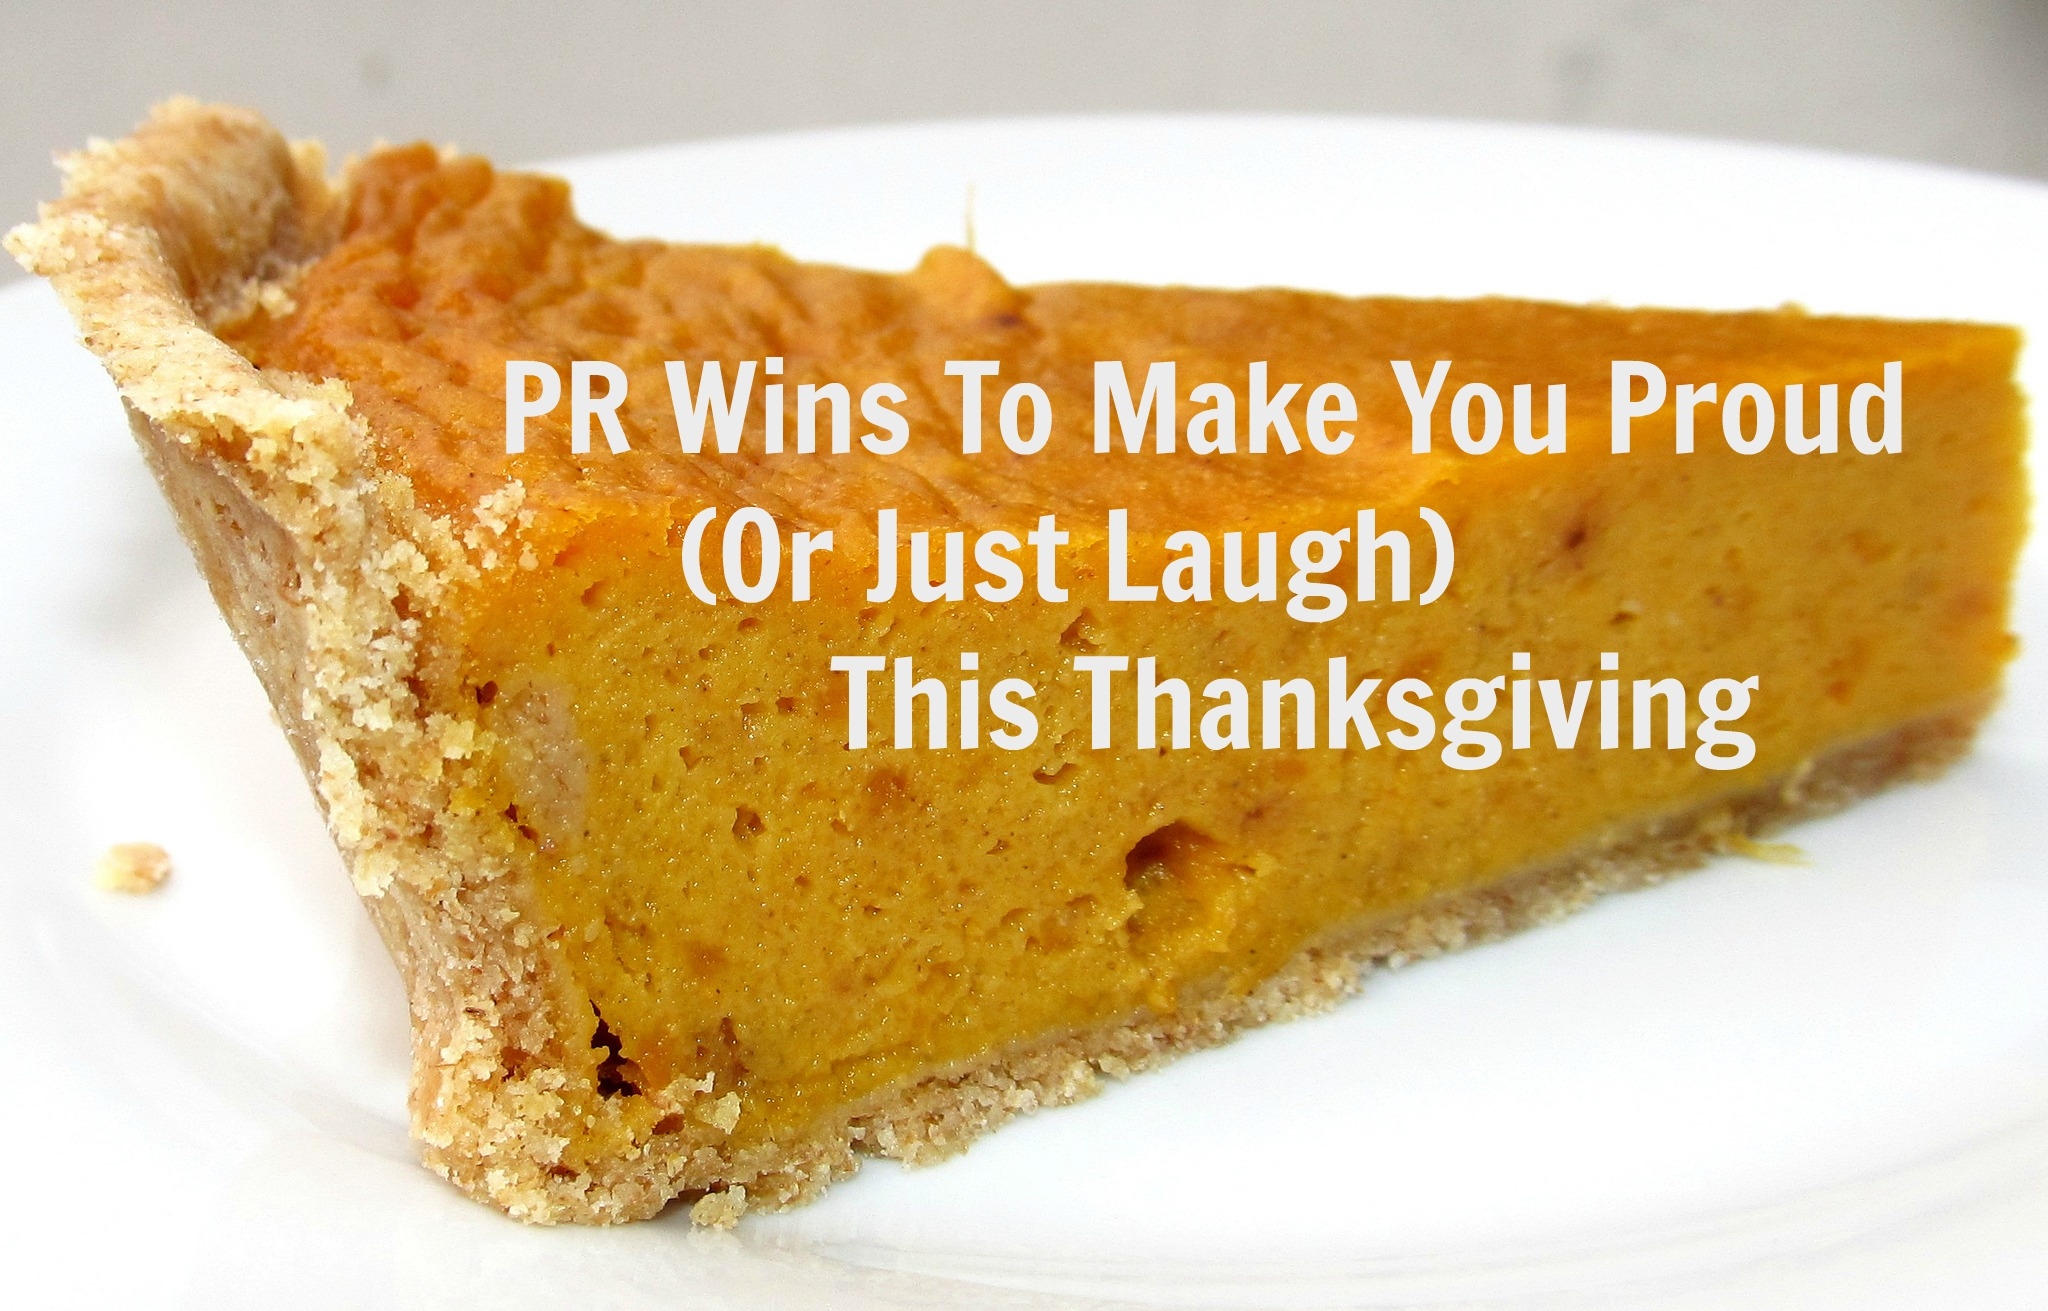 PR Wins To Make You Proud (Or Just Laugh) This Thanksgiving